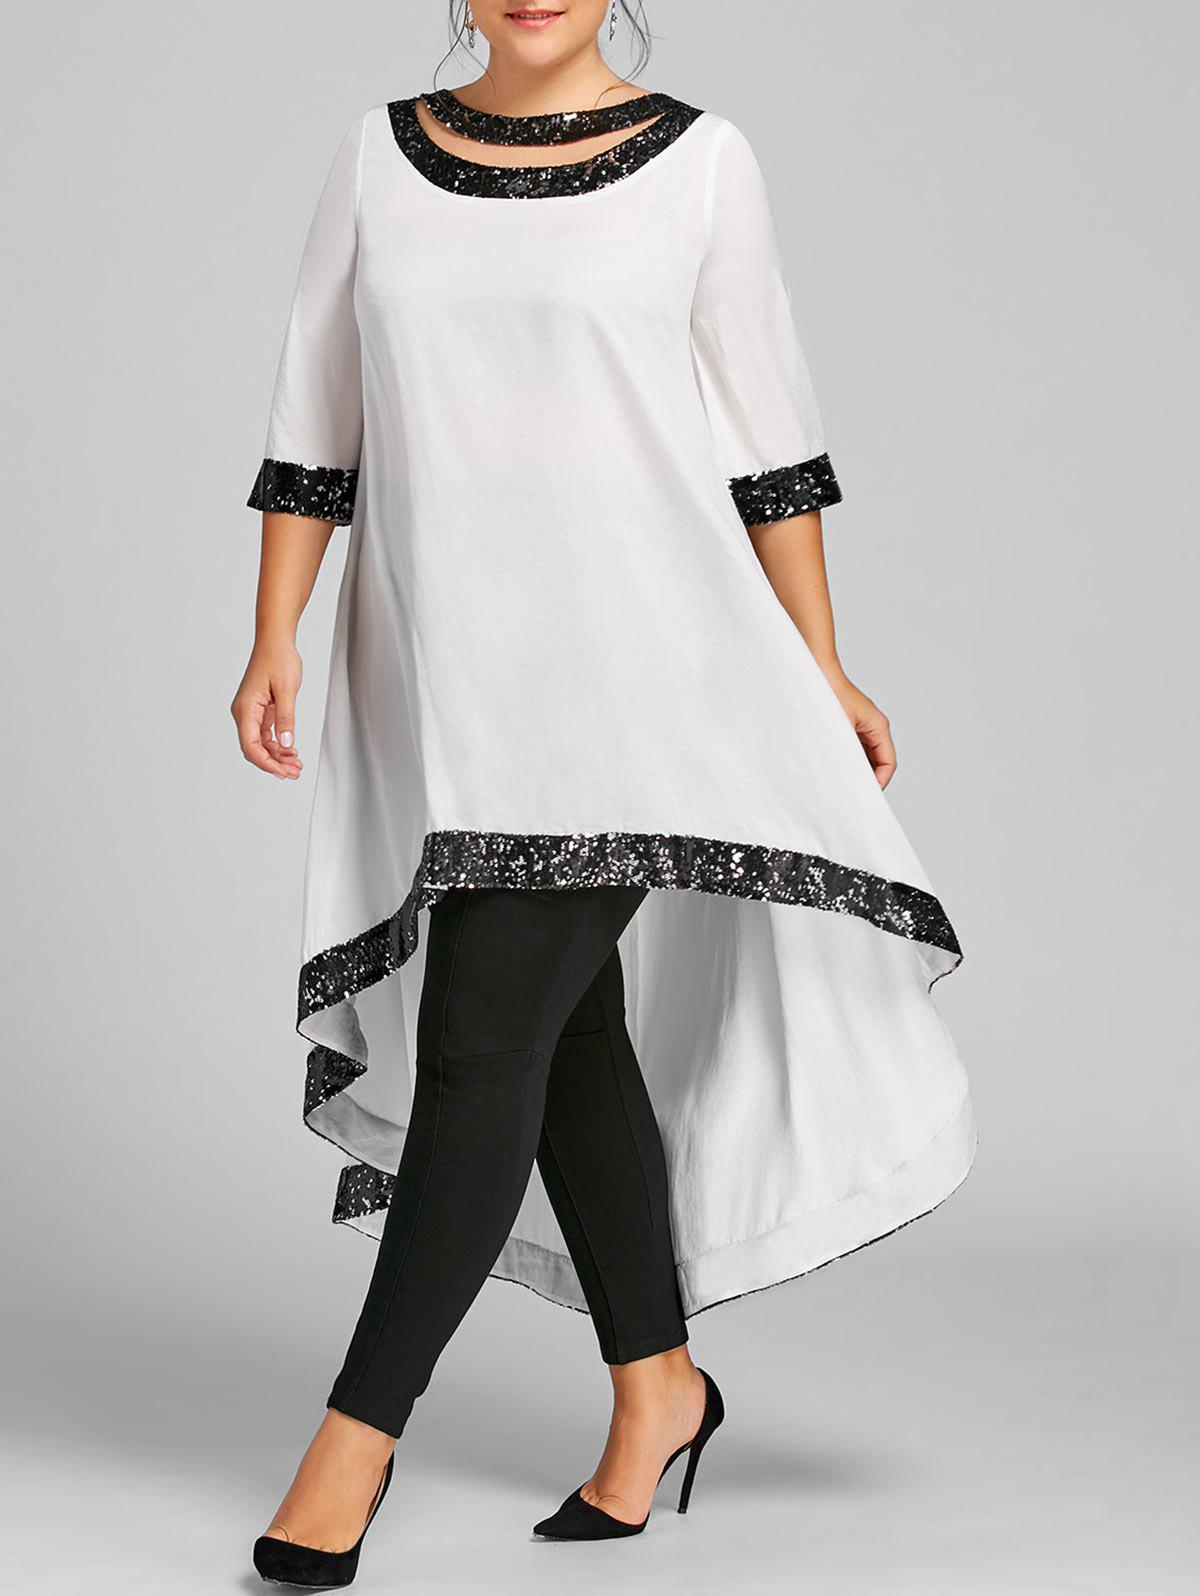 Plus Size Sequined Trim High Low DressWOMEN<br><br>Size: 3XL; Color: OFF-WHITE; Style: Brief; Material: Polyester; Silhouette: A-Line; Dresses Length: Knee-Length; Neckline: Boat Neck; Sleeve Length: 3/4 Length Sleeves; Embellishment: Sequined; Pattern Type: Solid; With Belt: No; Season: Fall,Spring; Weight: 0.3500kg; Package Contents: 1 x Dress;